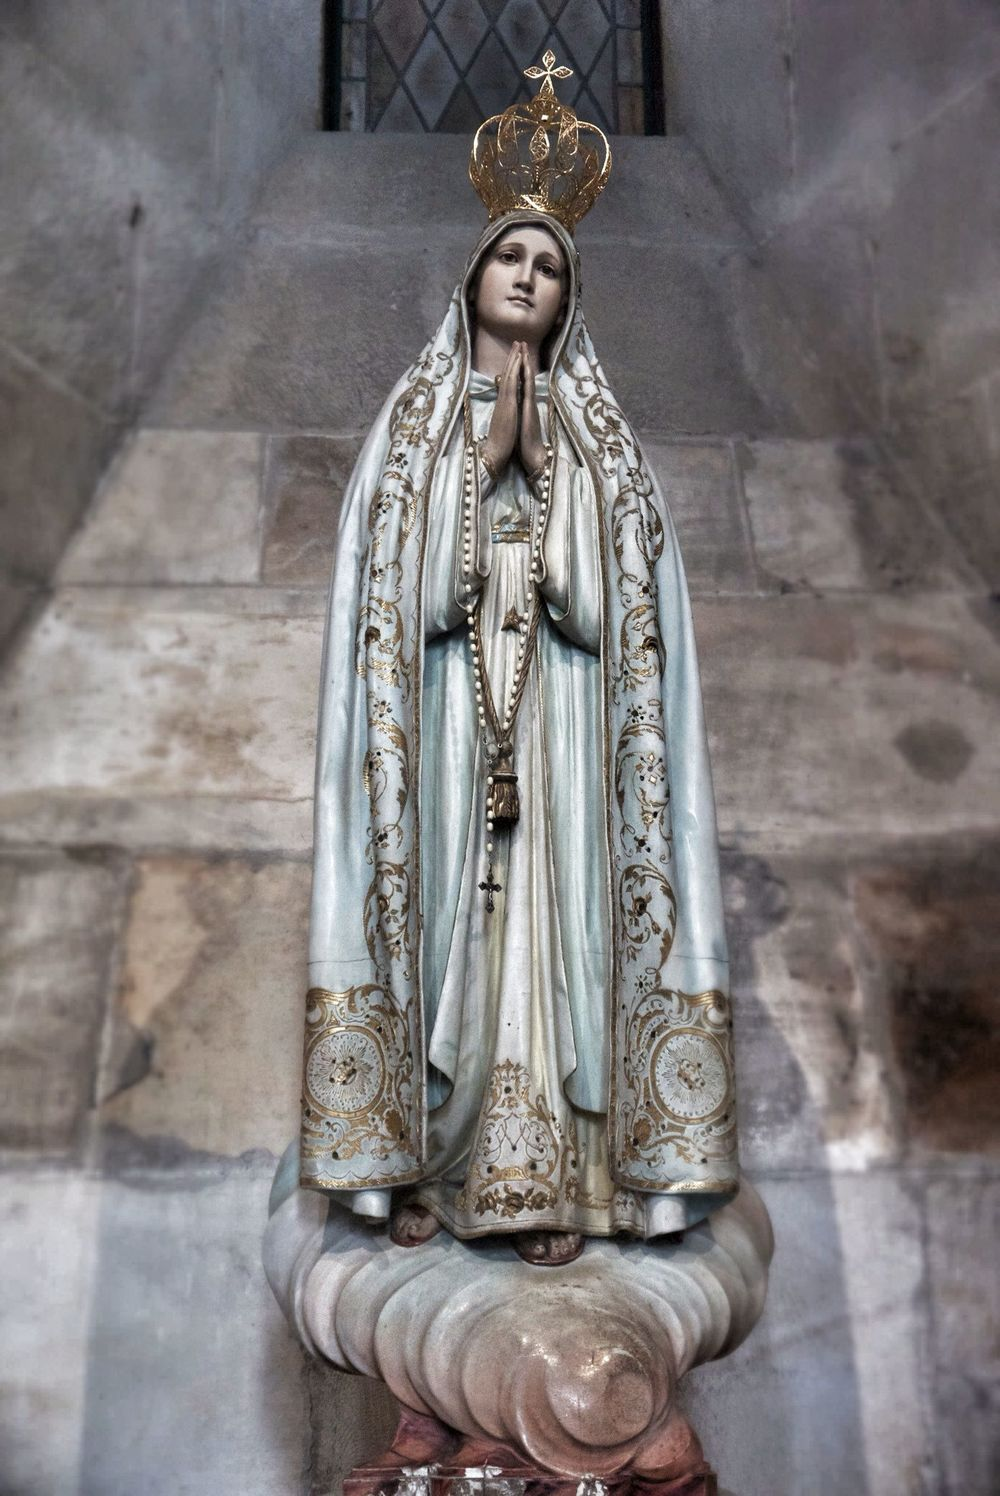 Quite possibly the most beautiful statue in a church ever